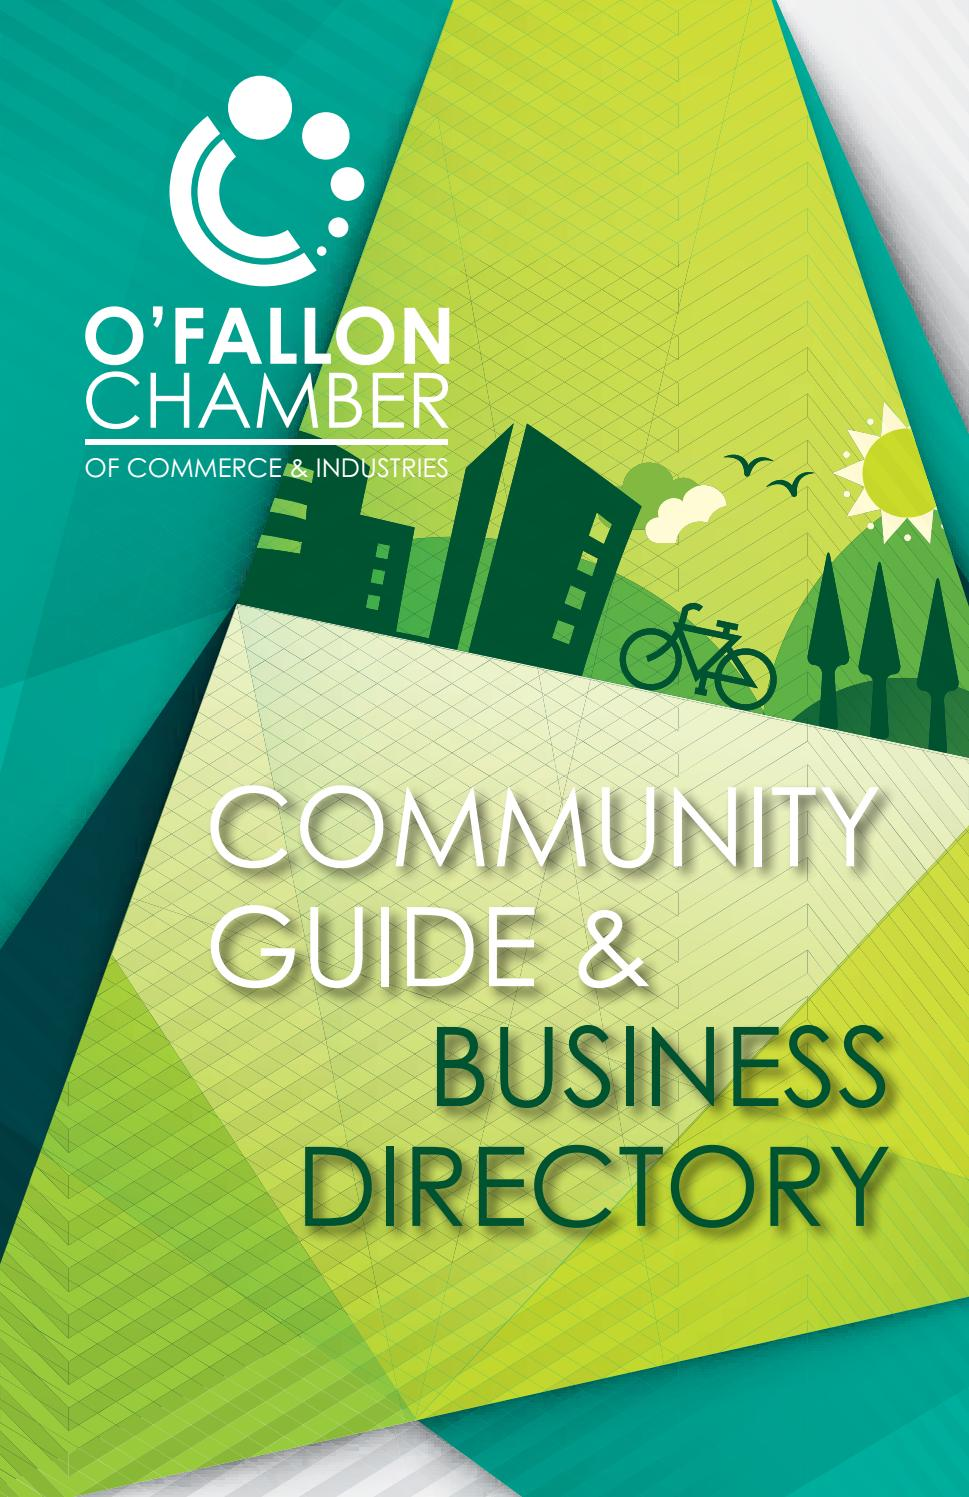 2017 o'fallon chamber community guide & business directory by o